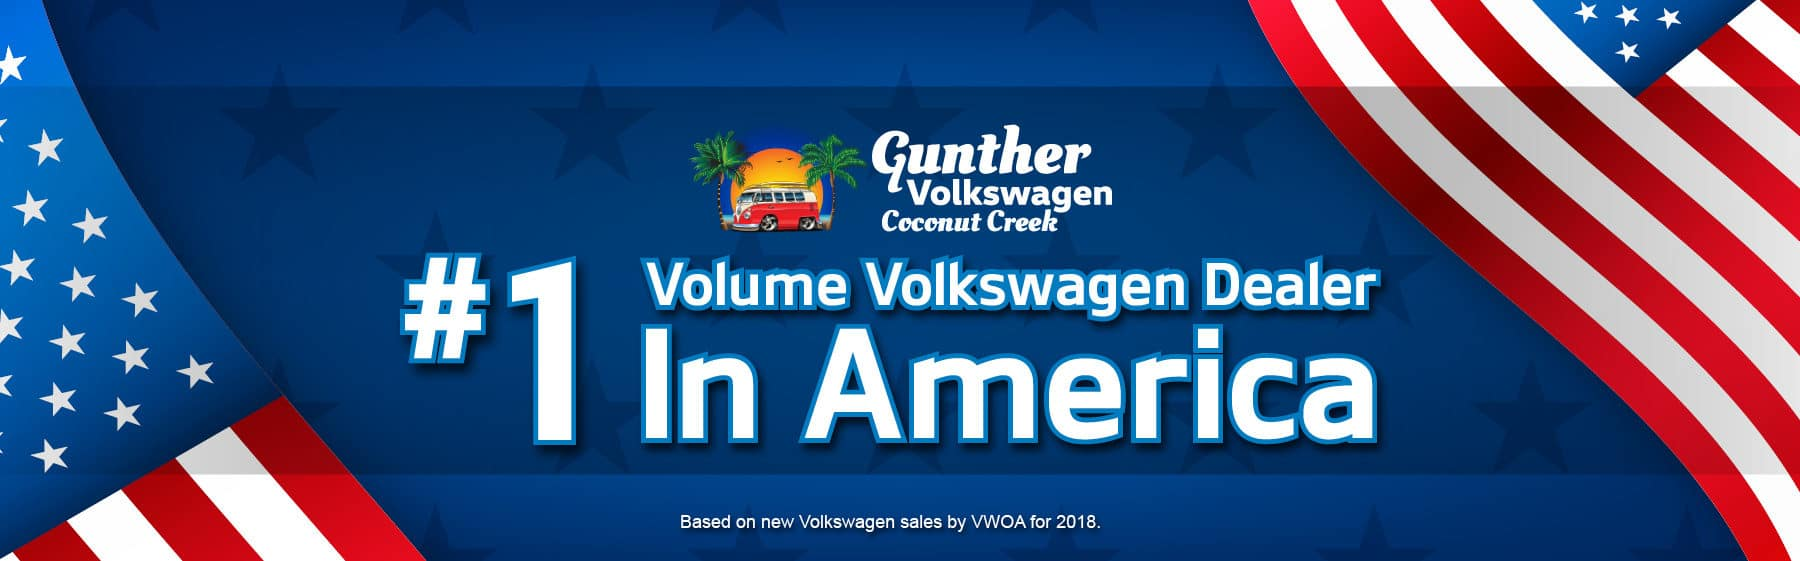 #1 volume volkswagen dealer in america